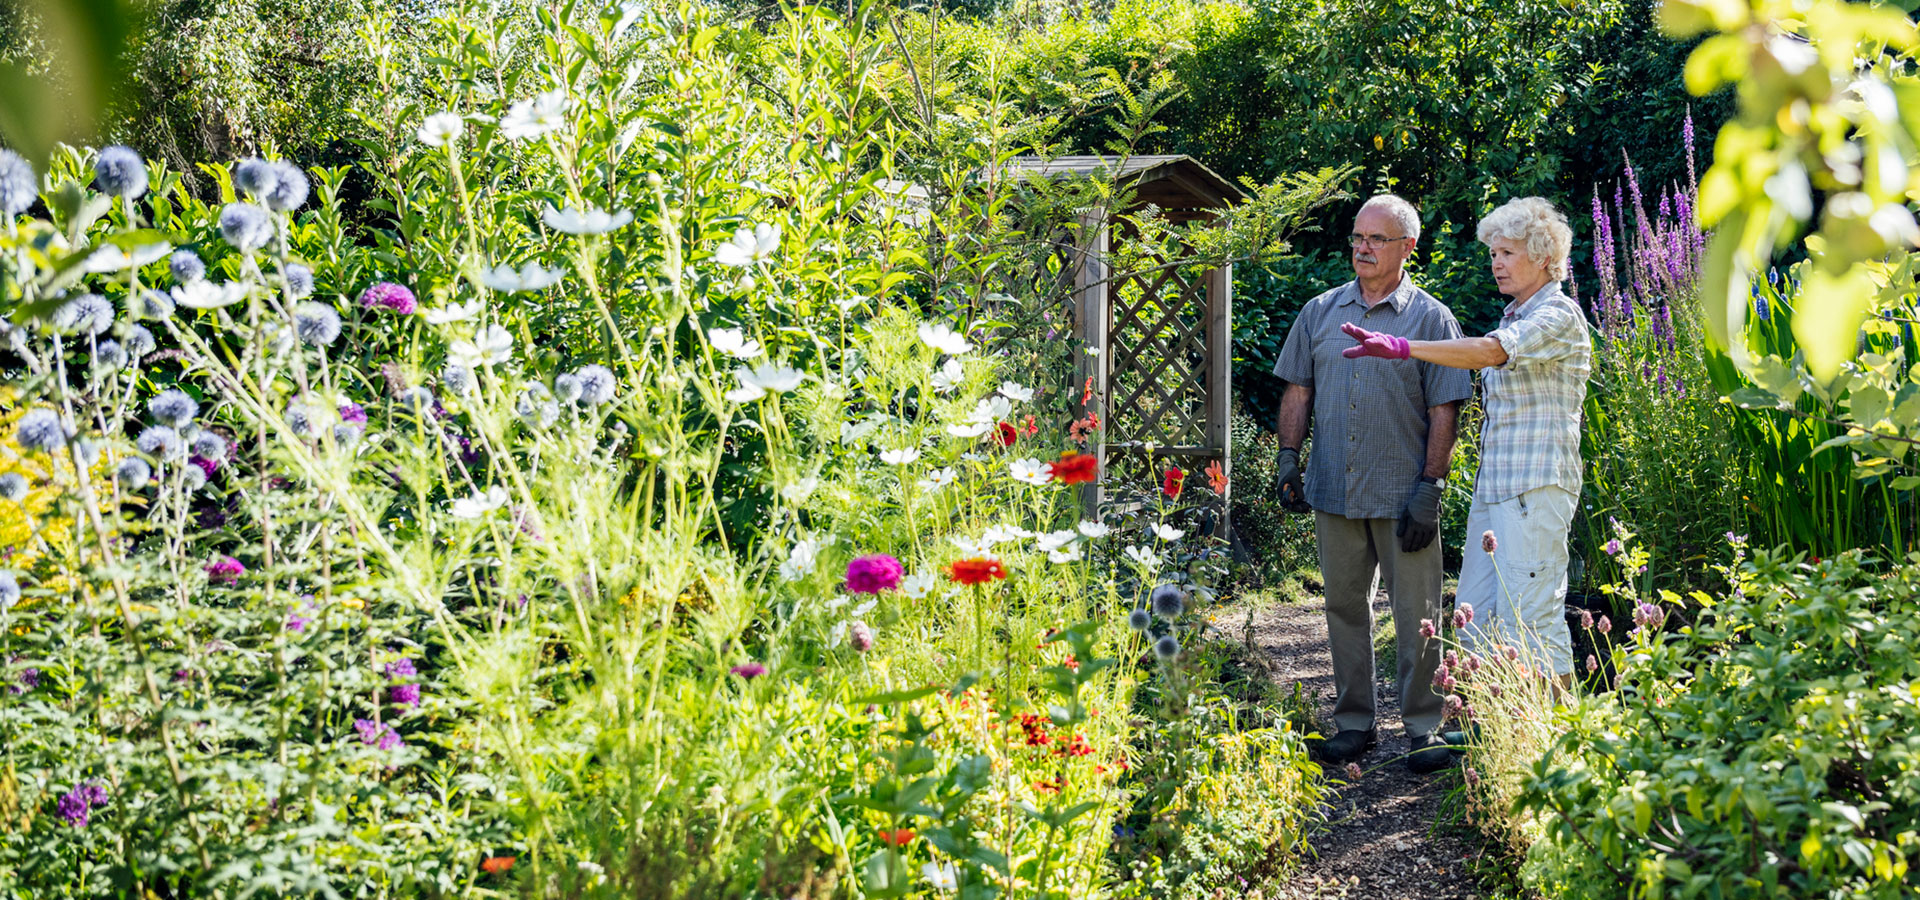 5 Steps for Planning Your New Garden